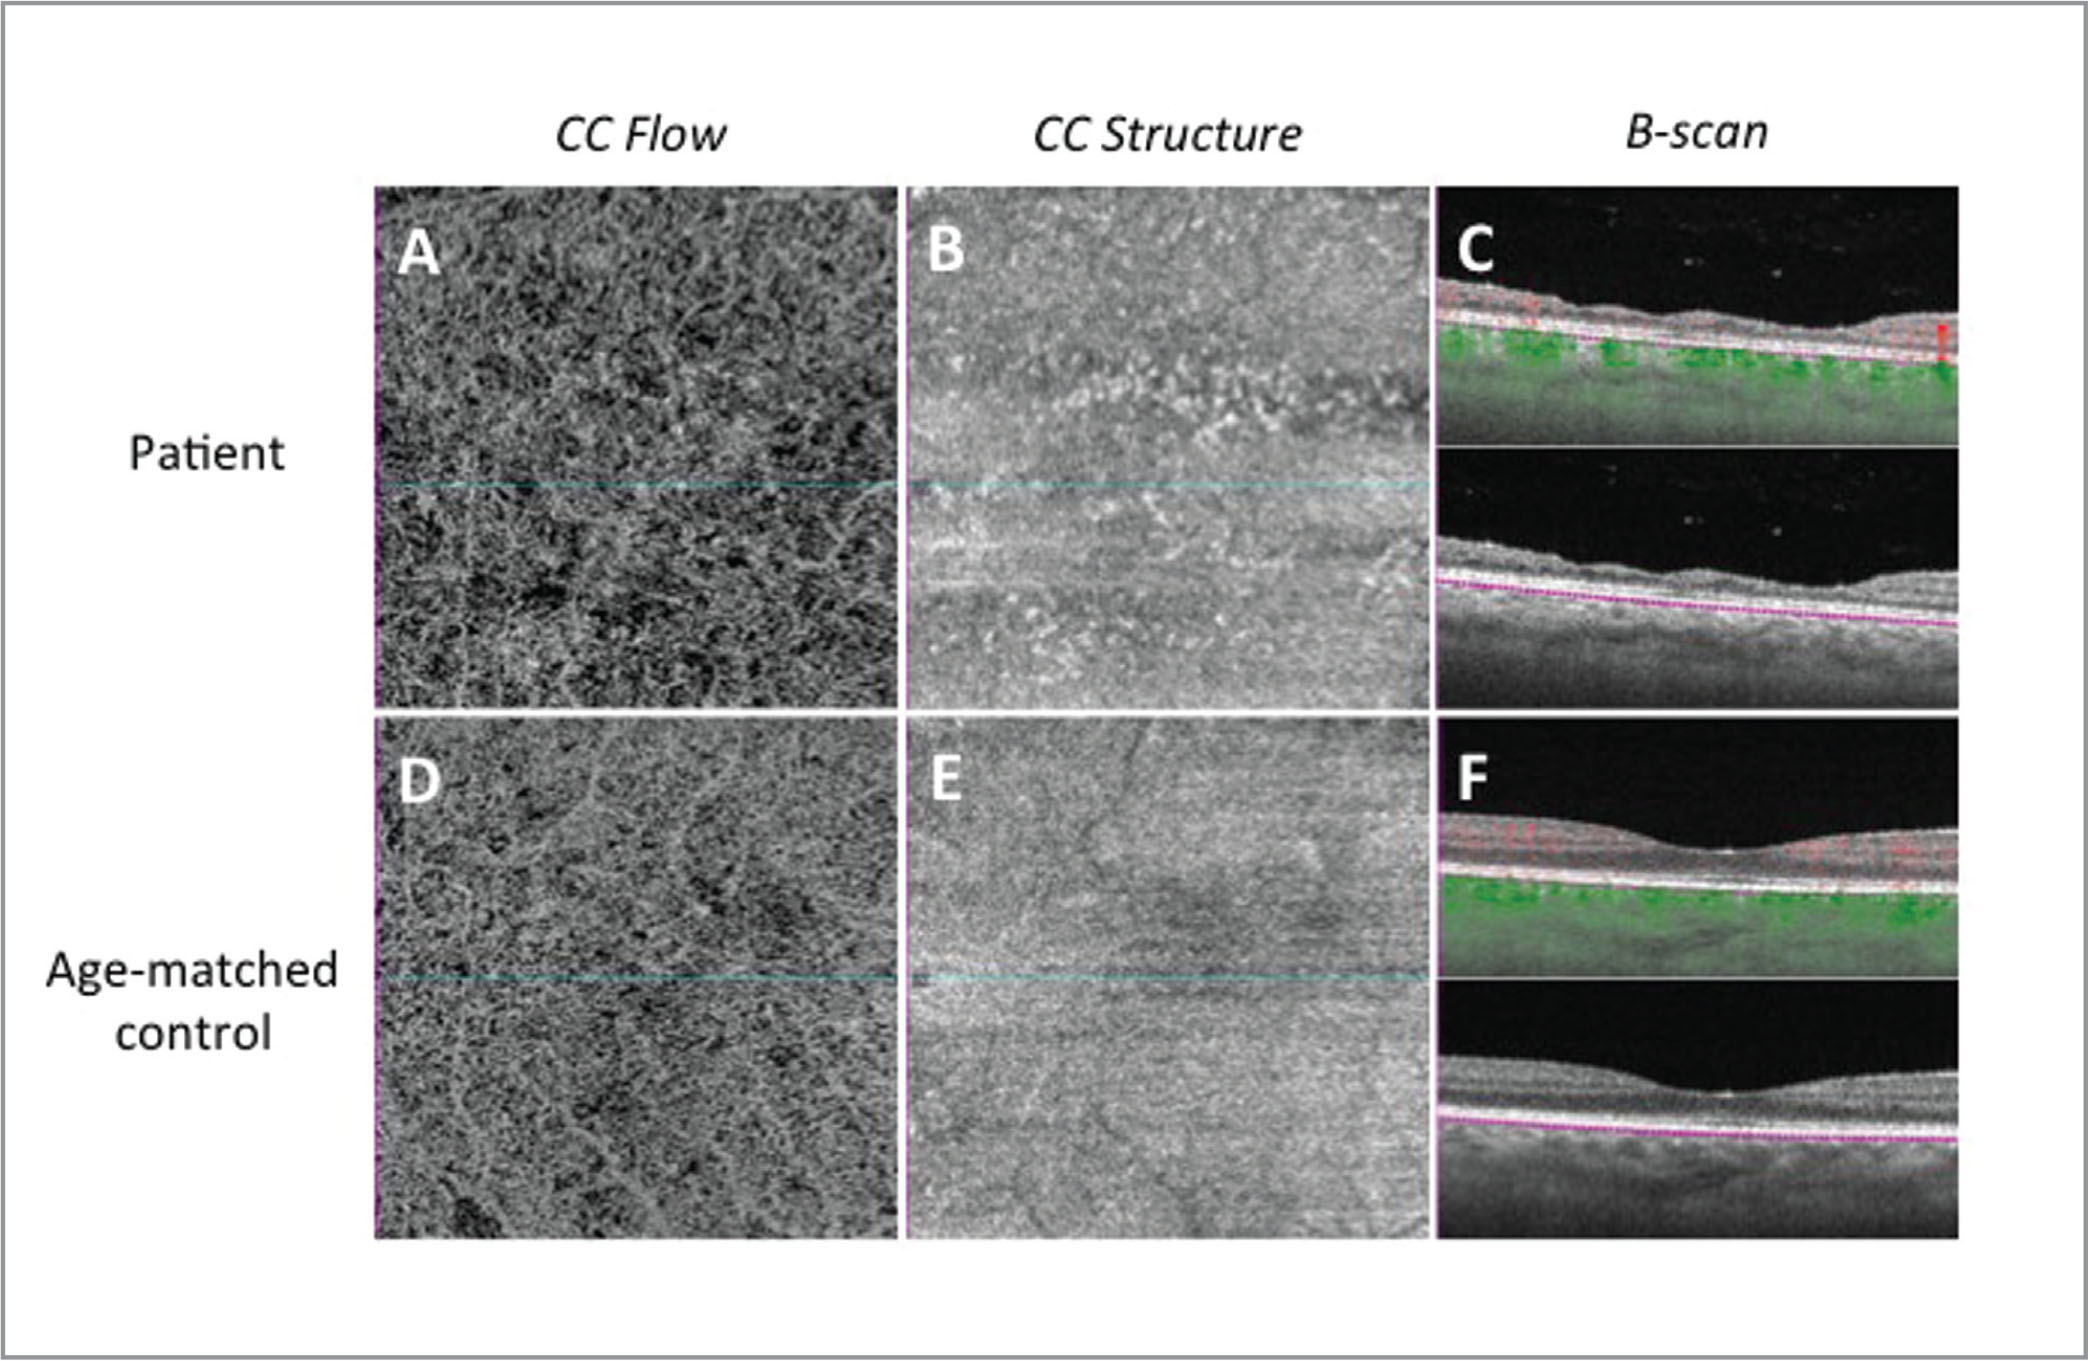 Swept-source optical coherence tomography angiography of the choriocapillaris (CC) of the right eye. En face images of (A) CC flow, (B) CC structure, and (C) corresponding cross-sectional B-scans of this patient demonstrate reduced CC flow with an increase in the number and area of flow voids. (D–F) Images from an age-matched control are provided for reference; en face images of (D) CC flow, (E) CC structure, and (F) corresponding cross-sectional B-scans.